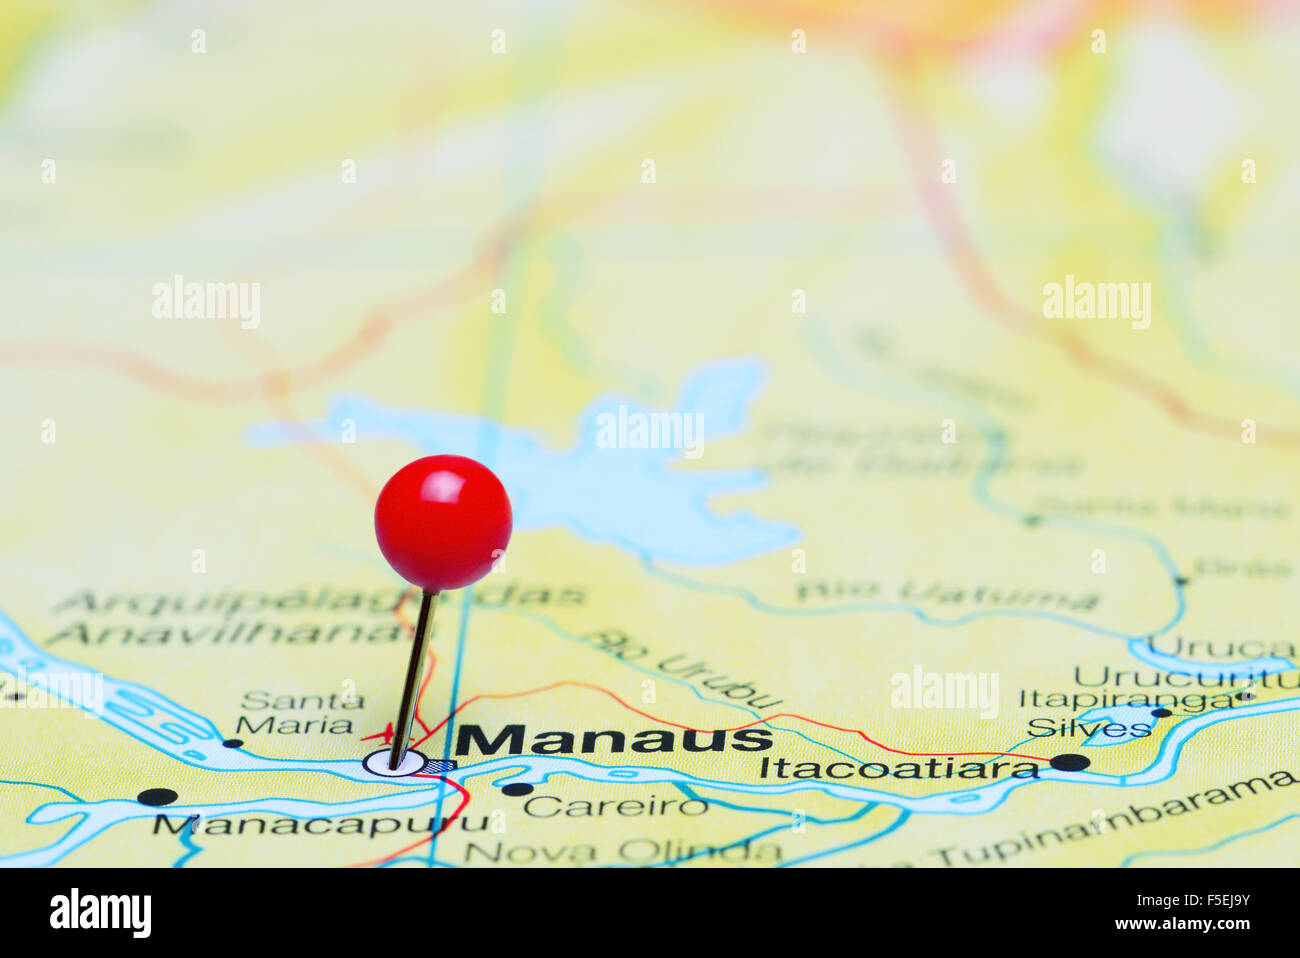 Manaus Brazil Map Dia Airport Map Double Map - Manaus map